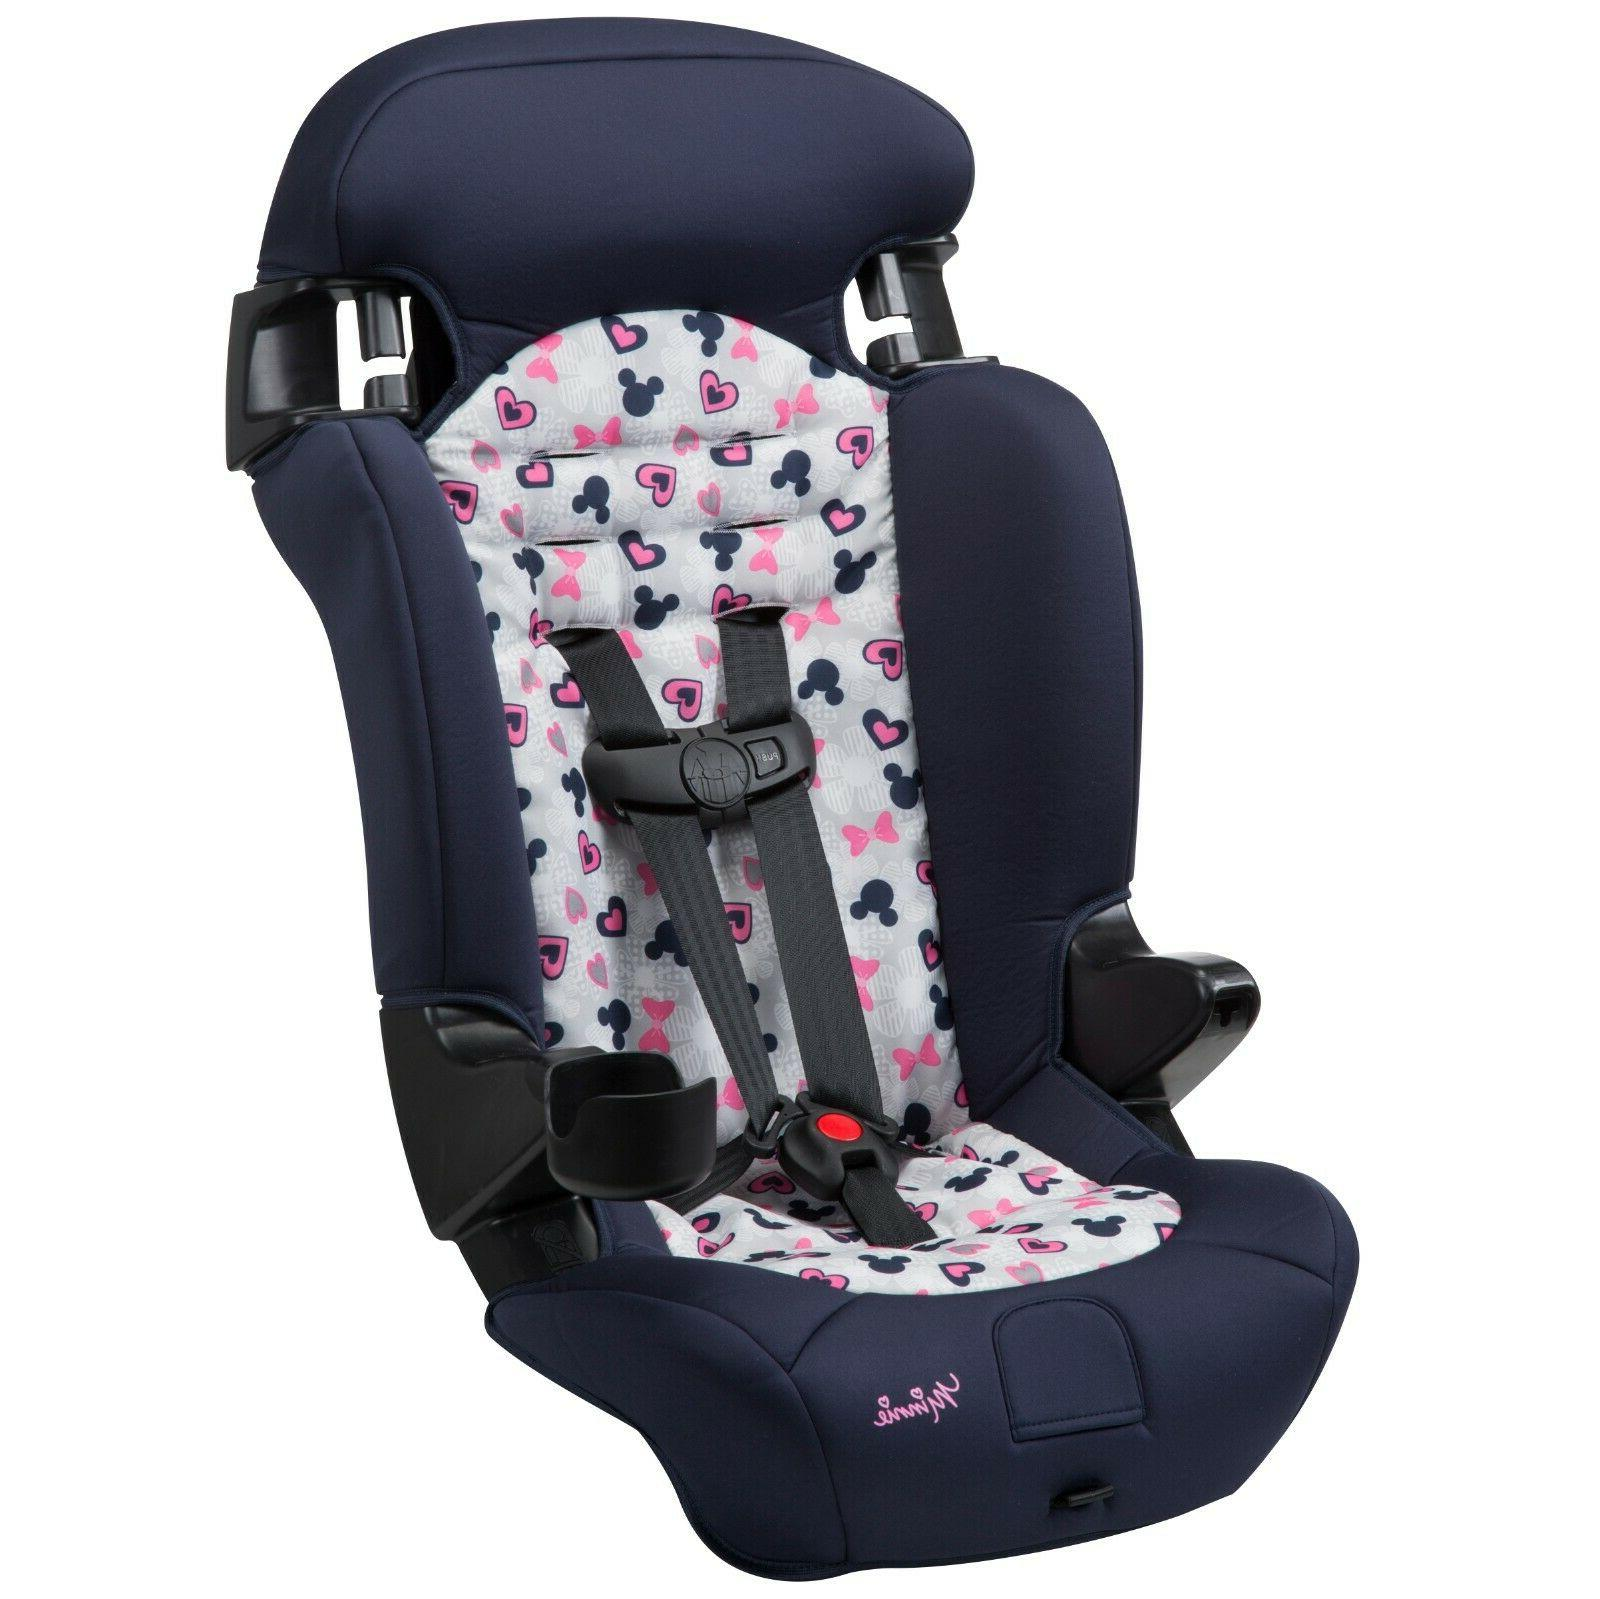 baby safety convertible car seat 2in1 chair